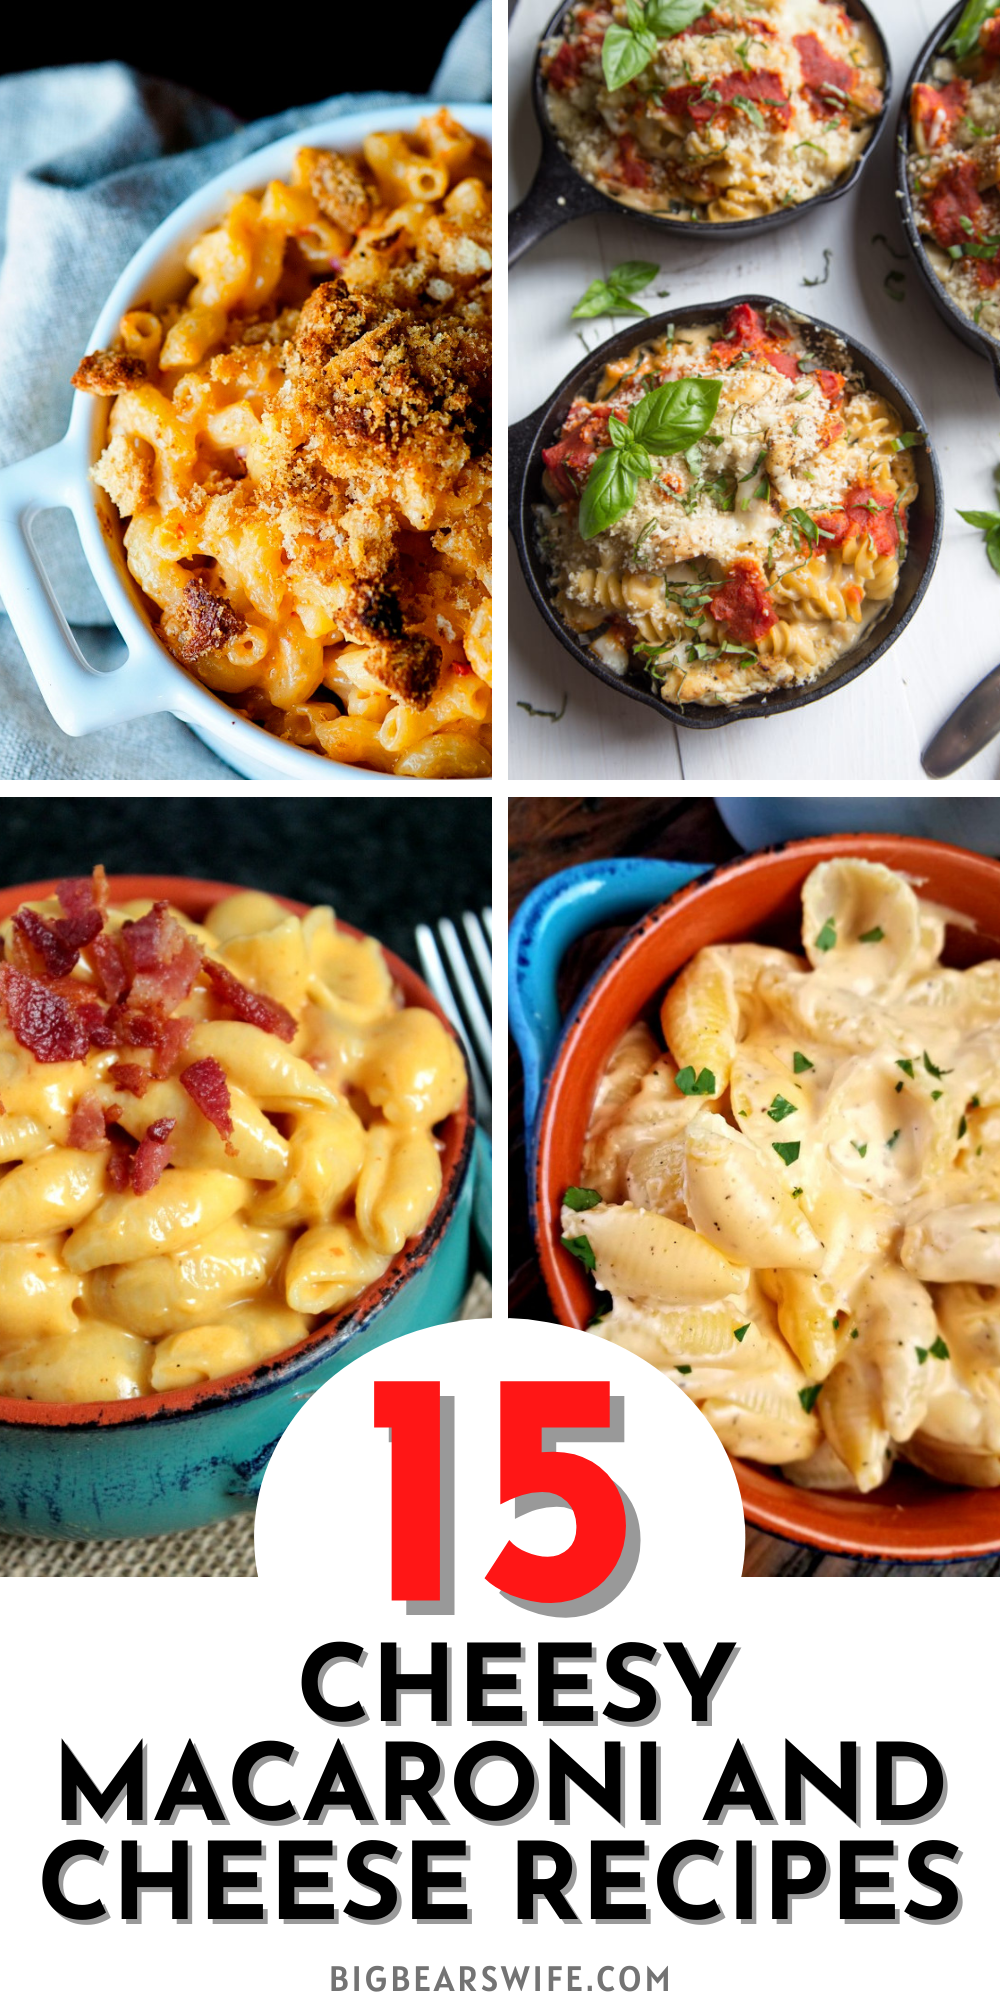 One of my favorite side dishes at holiday dinners has always been mac and cheese! These recipes are sure to be a winner on your dinner table! Here are 15 Cheesy Macaroni and Cheese Recipes for you to pick from! via @bigbearswife